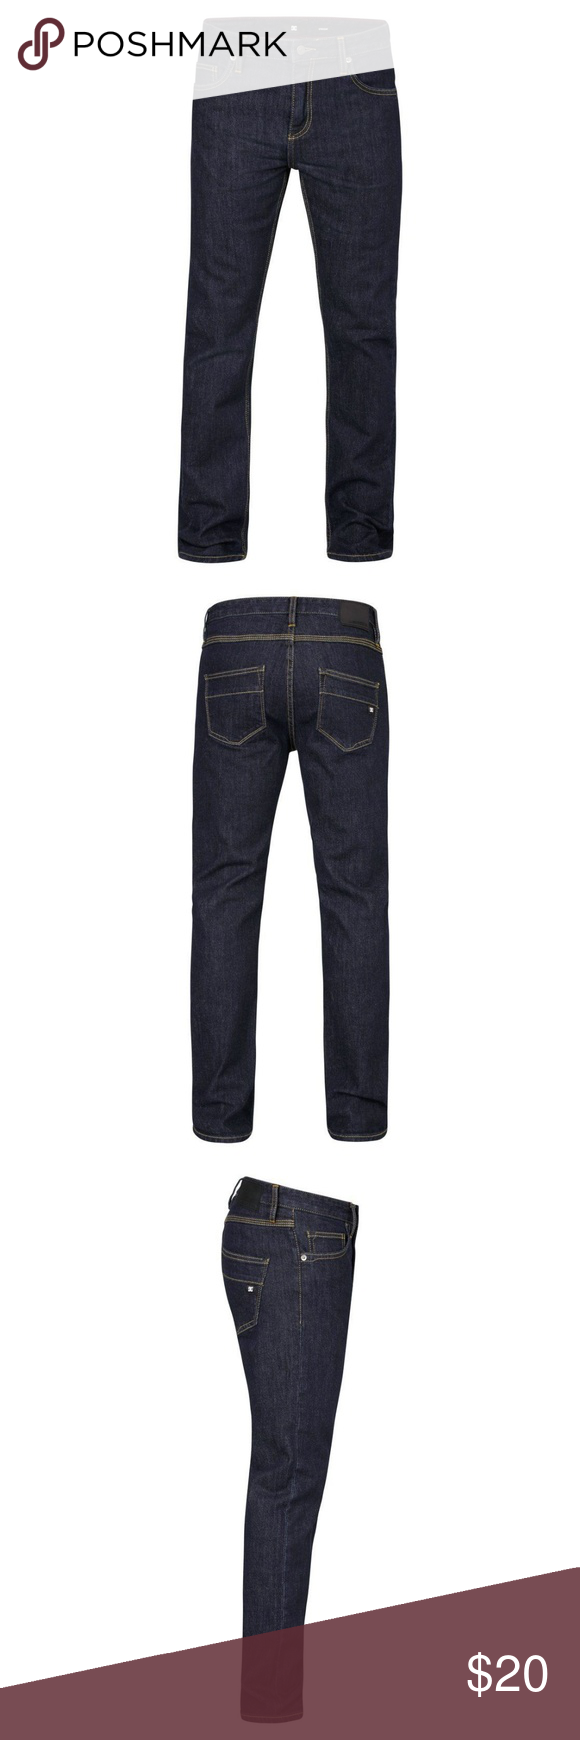 9312de3639877 DC Men s Worker Slim Length Indigo Rinse Jeans For all reasons and seasons